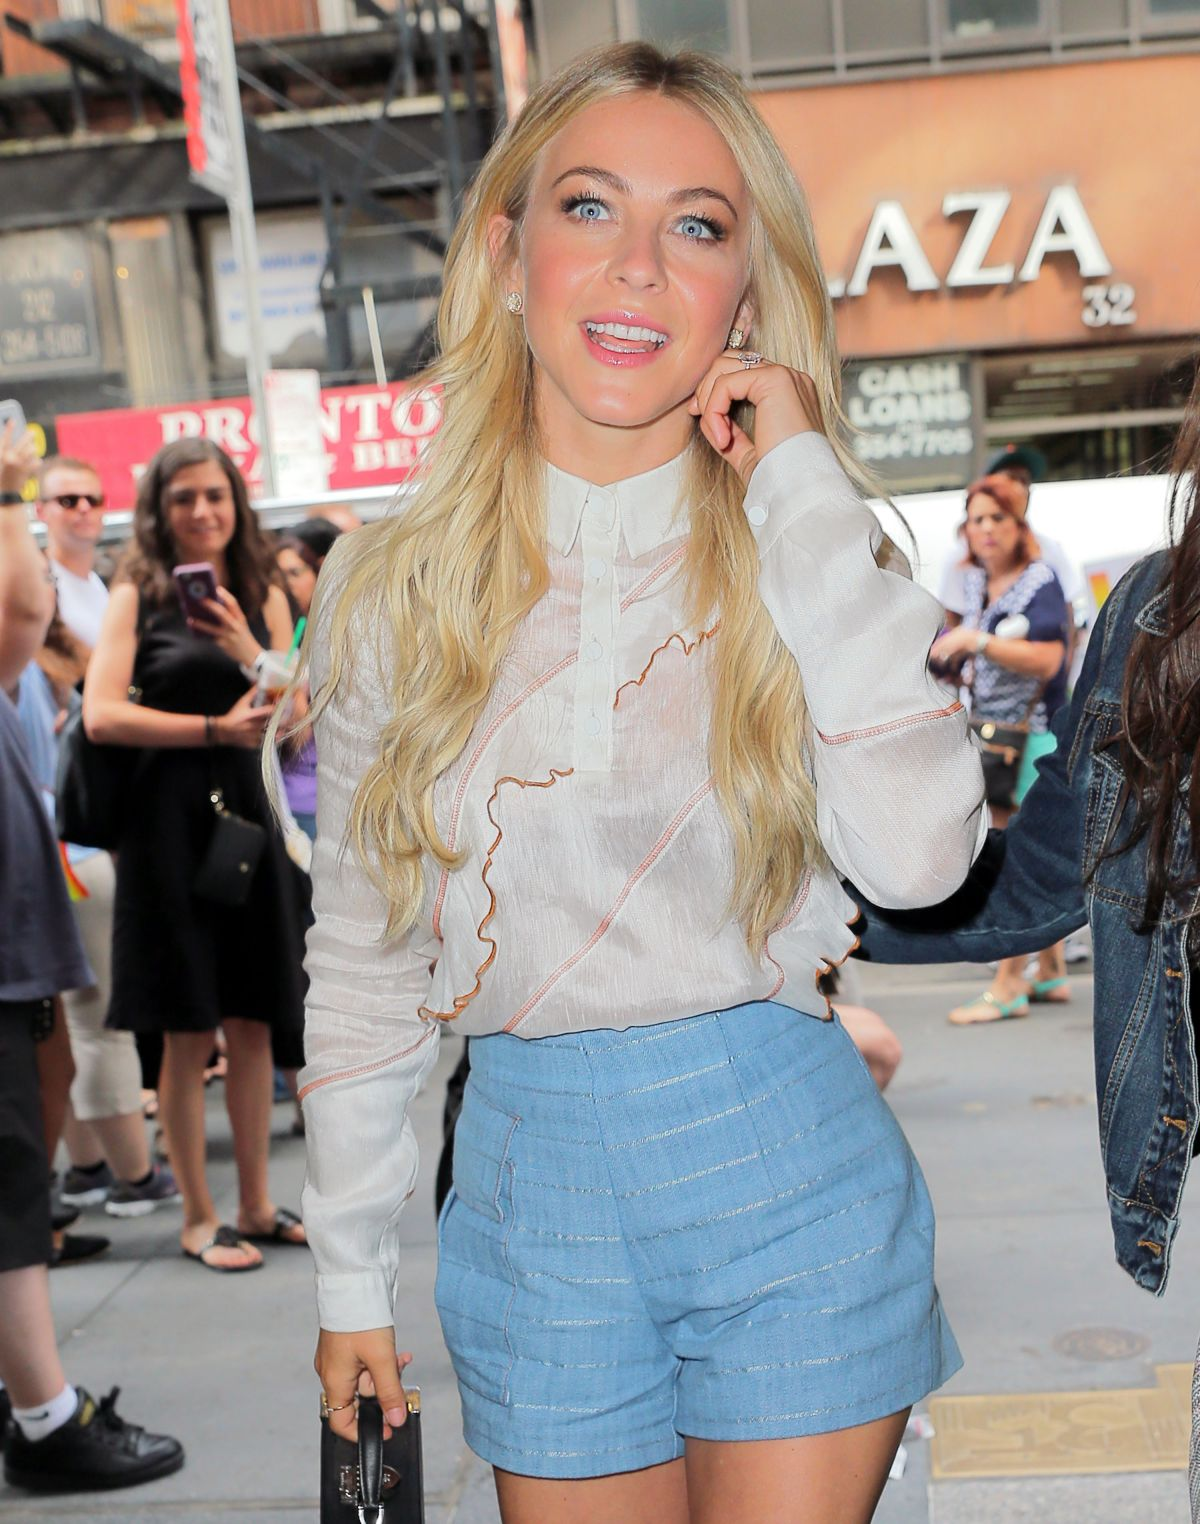 'Grease - Live' actress Julianne Hough arriving to The Today Show in NY City